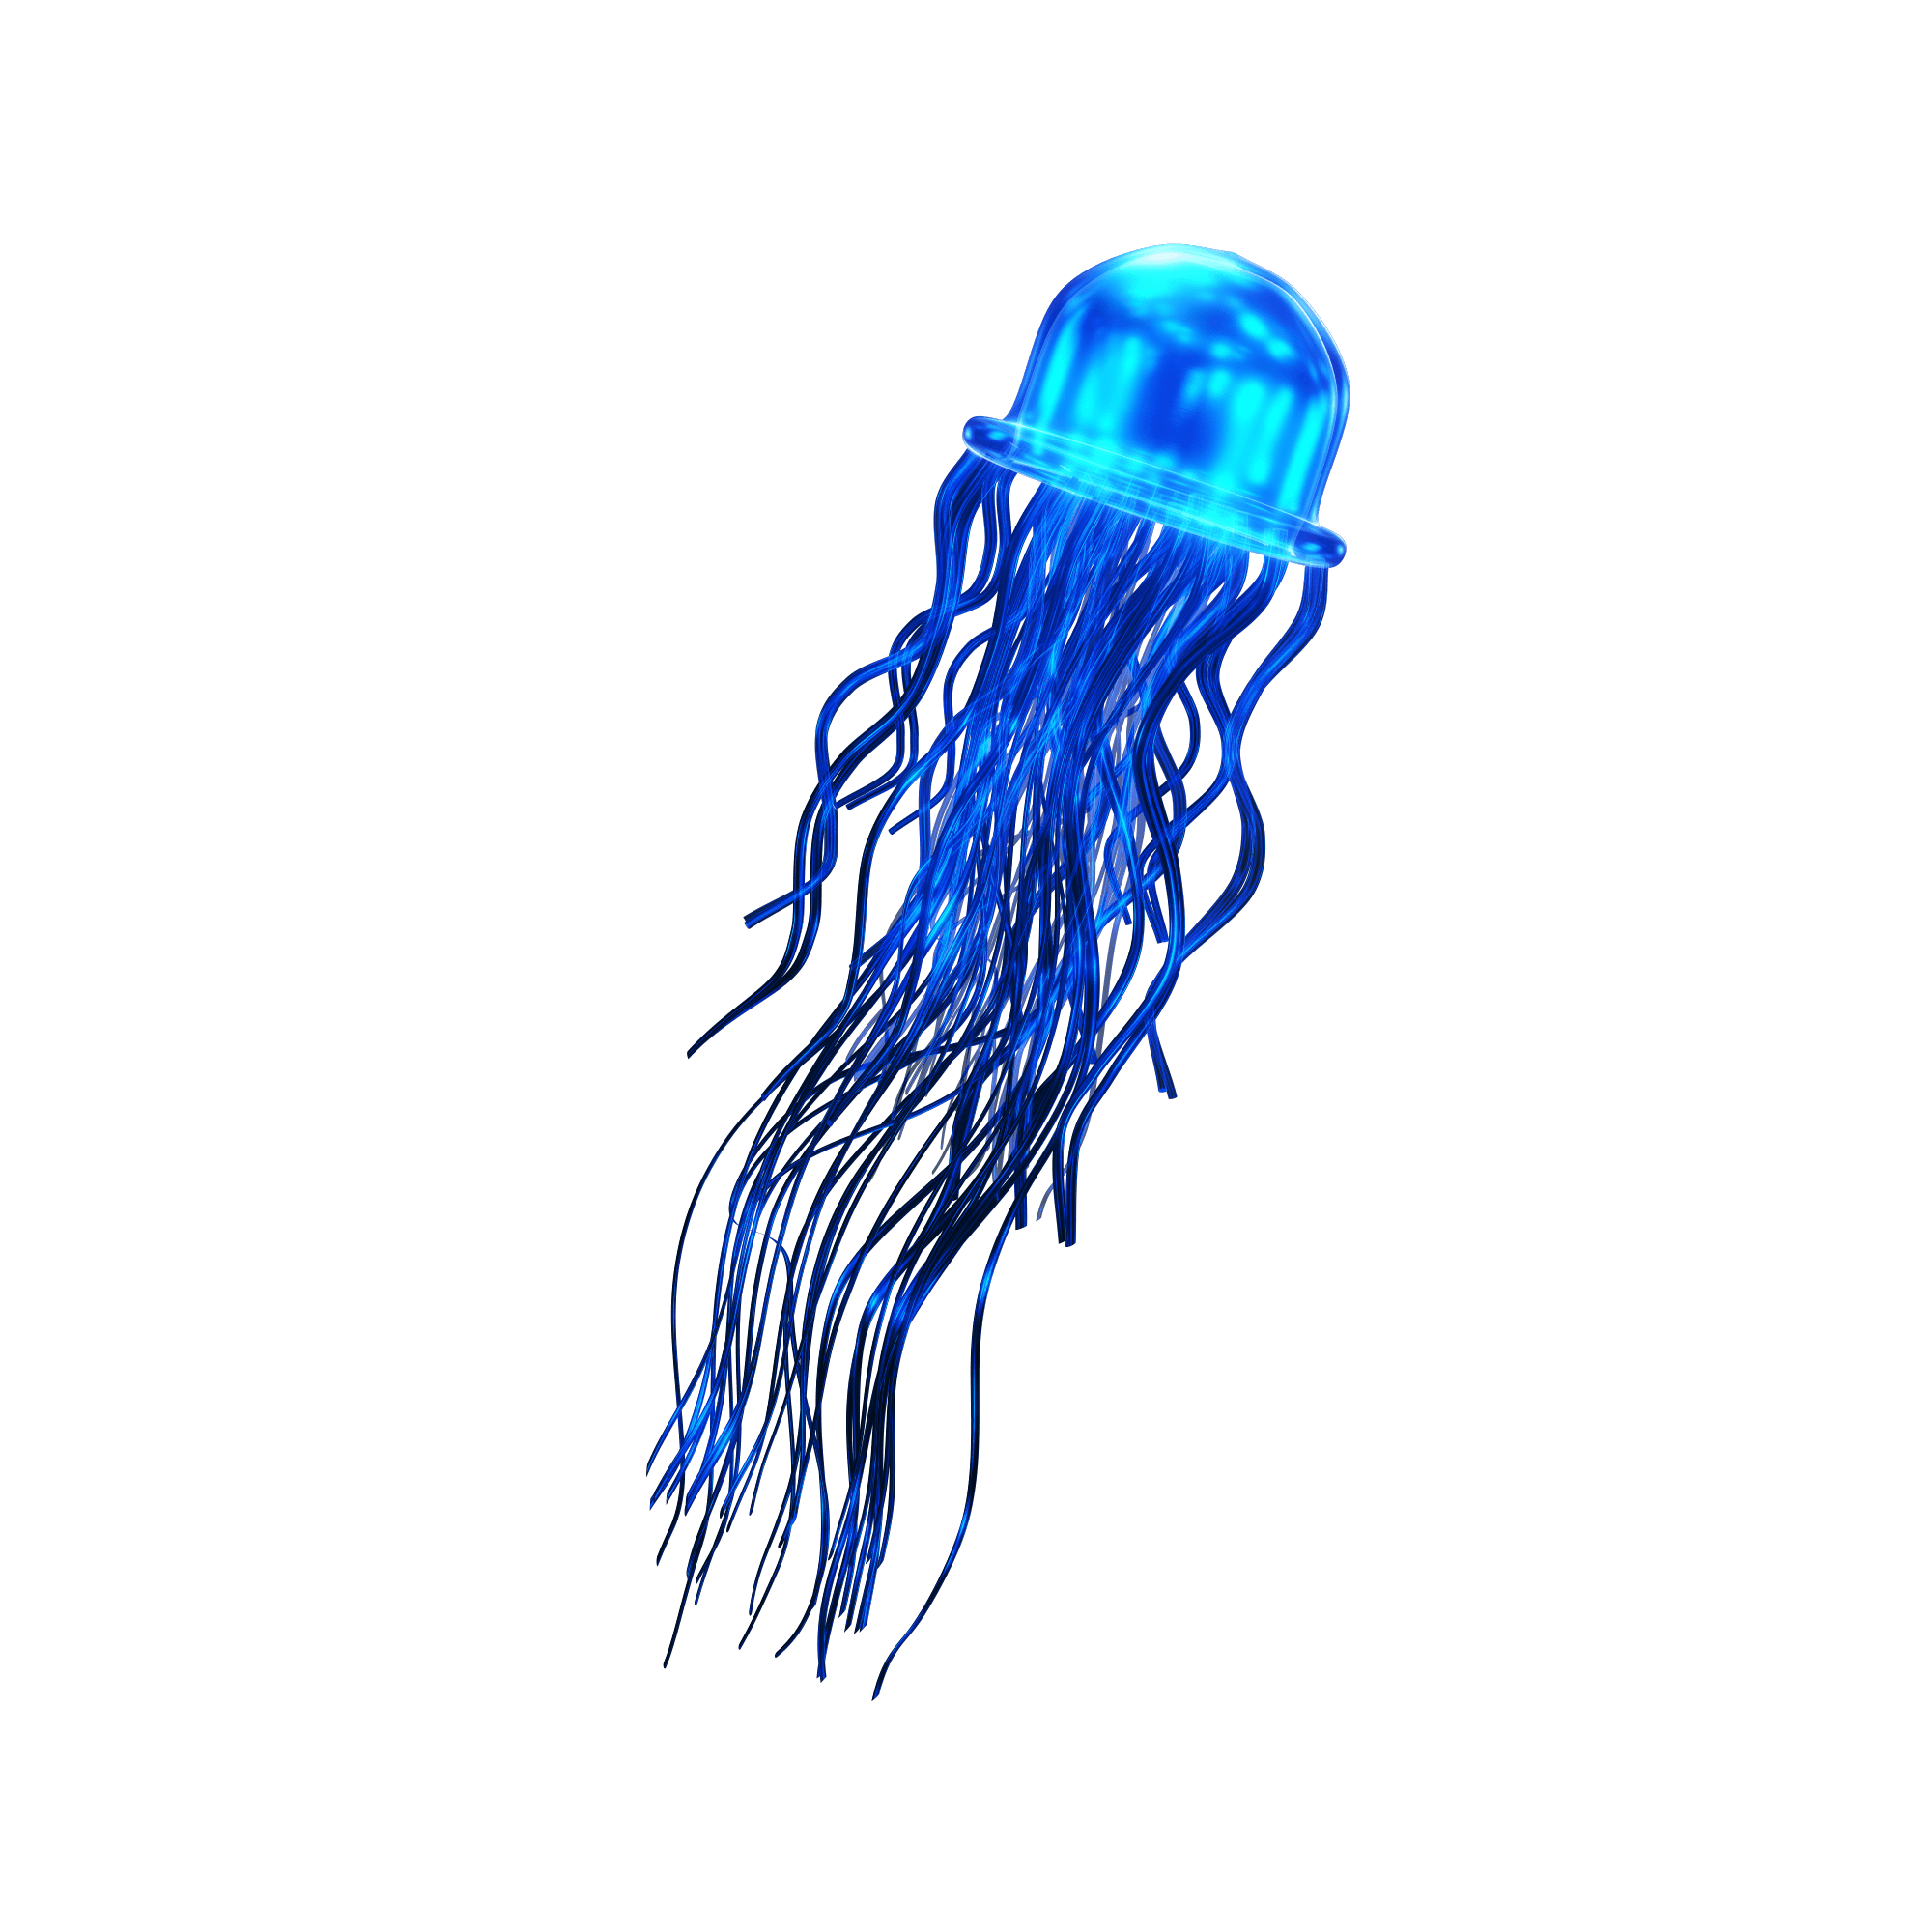 Belly the long narrow jelly that's blue and heals all jellyfish